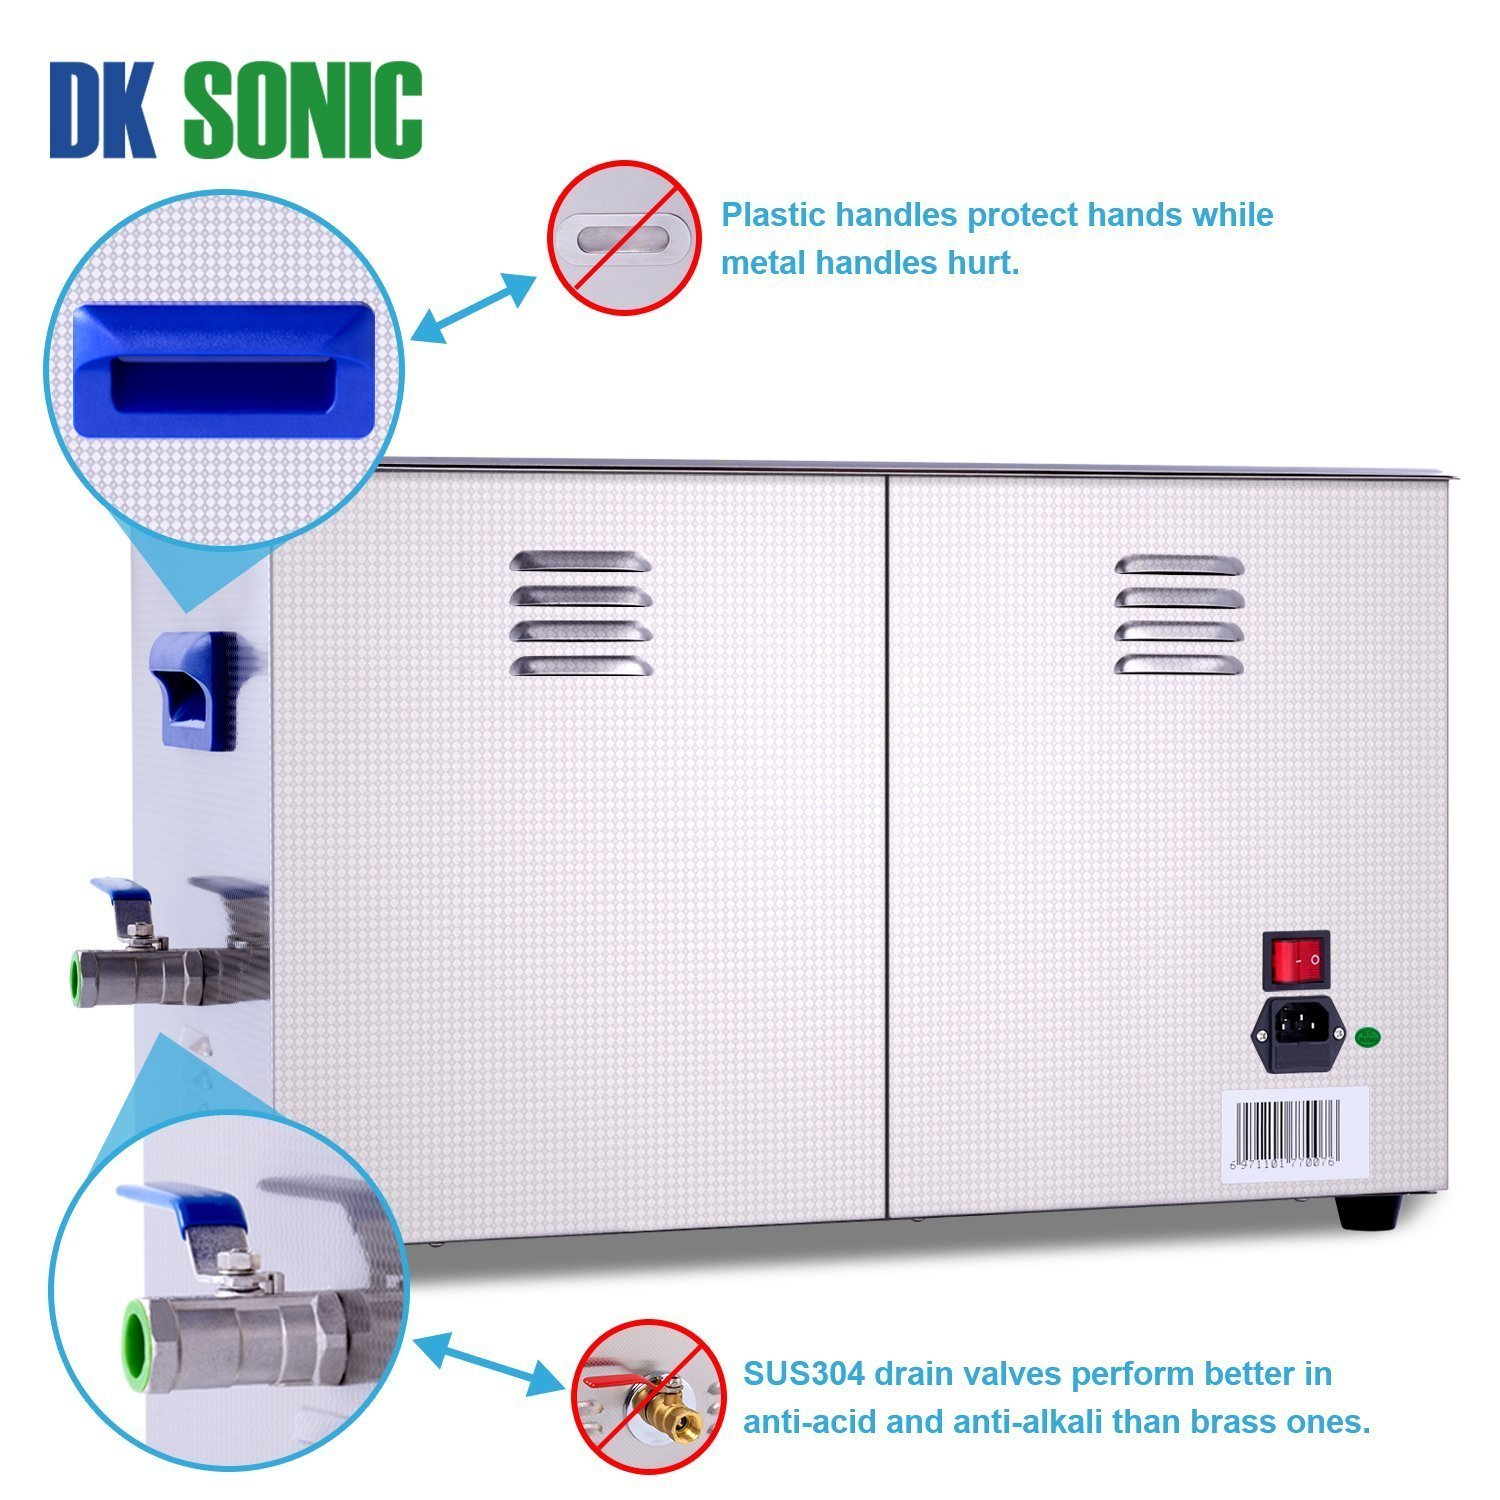 Lab Digital Ultrasonic Carburetor Cleaner Heated - DK SONIC 22L 480W Ultrasonic Gun Cleaner for Parts Jewelry Brass Eyeglass Ring Fuel Injector Glasses Record Diamond Circuit Board 28/40KHz by DK SONIC (Image #4)